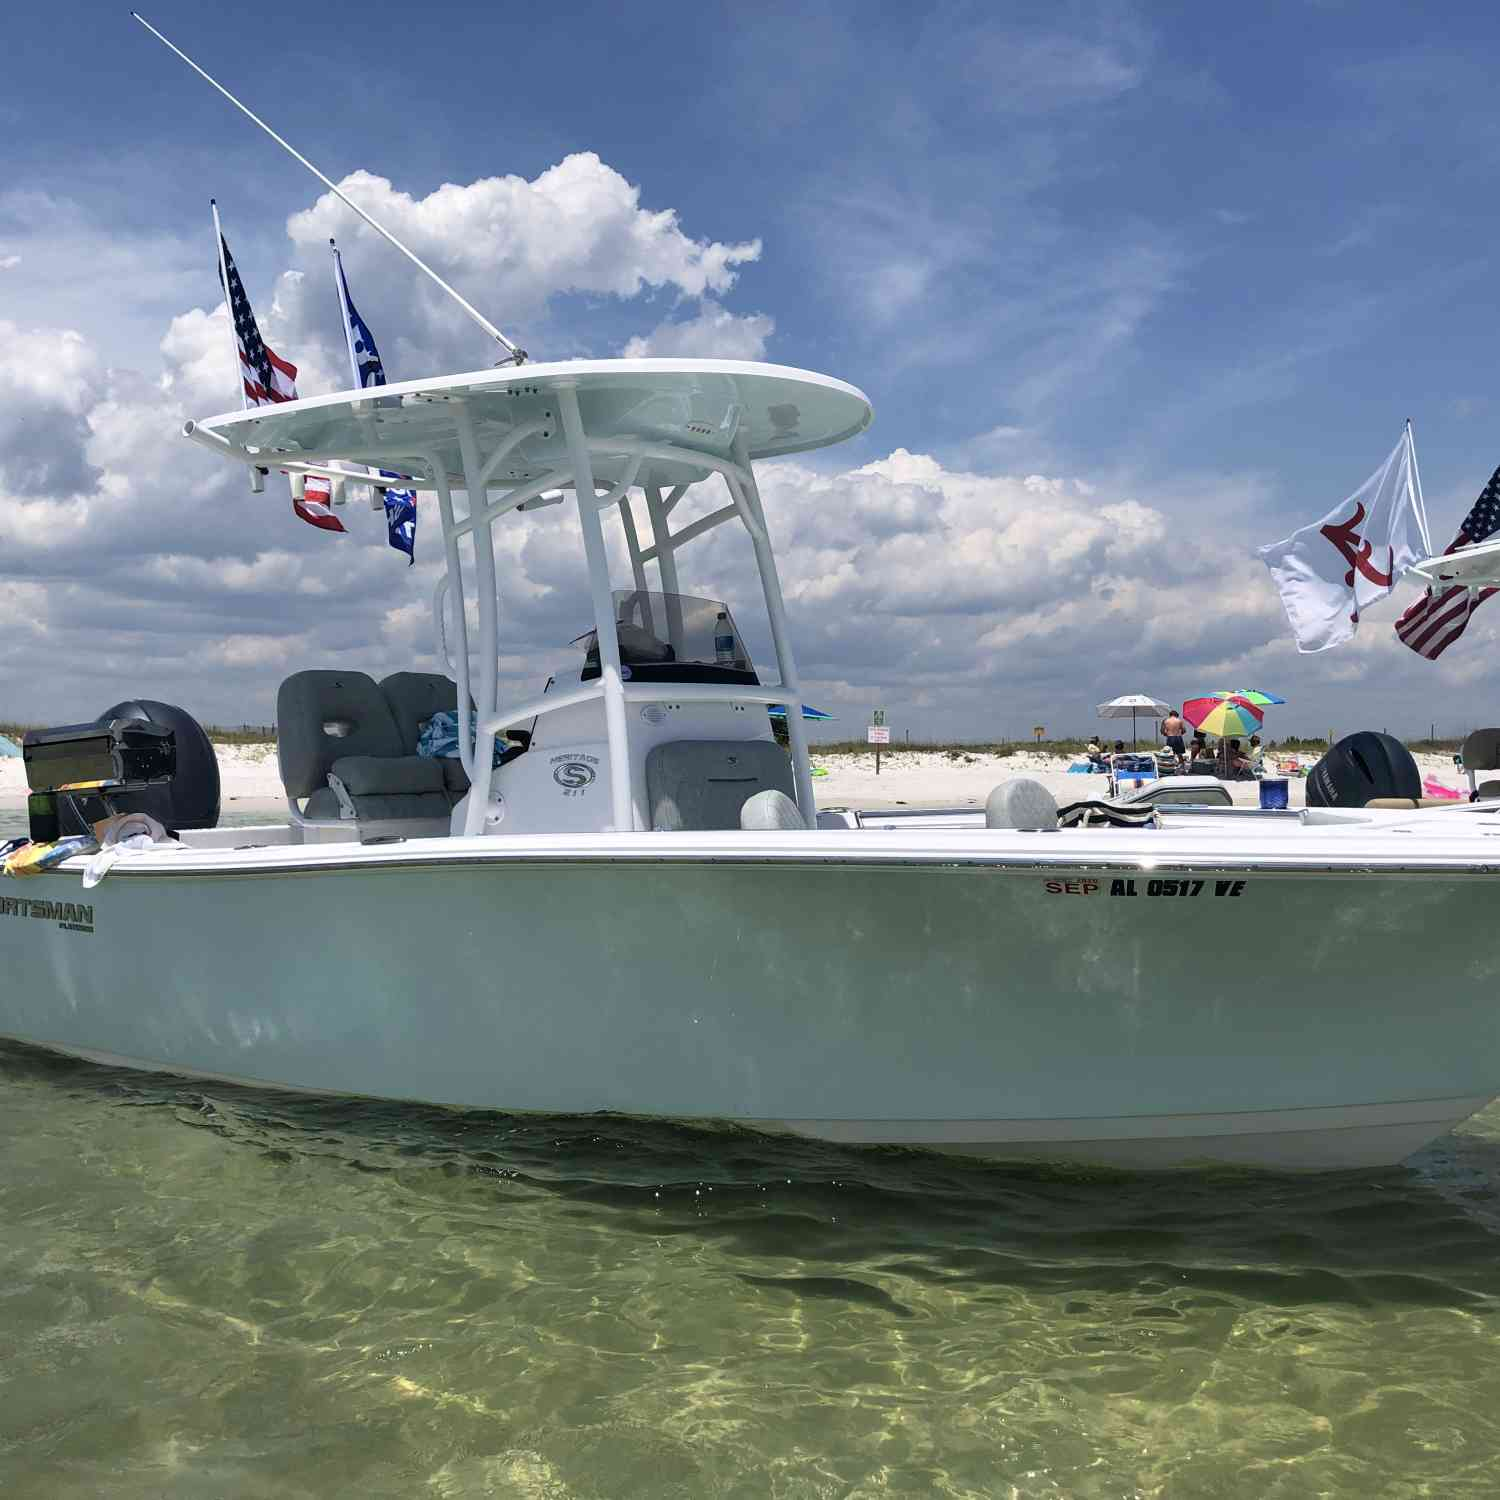 Title: Beach - On board their Sportsman Heritage 211 Center Console - Location: Orange beach al. Participating in the Photo Contest #SportsmanJuly2020